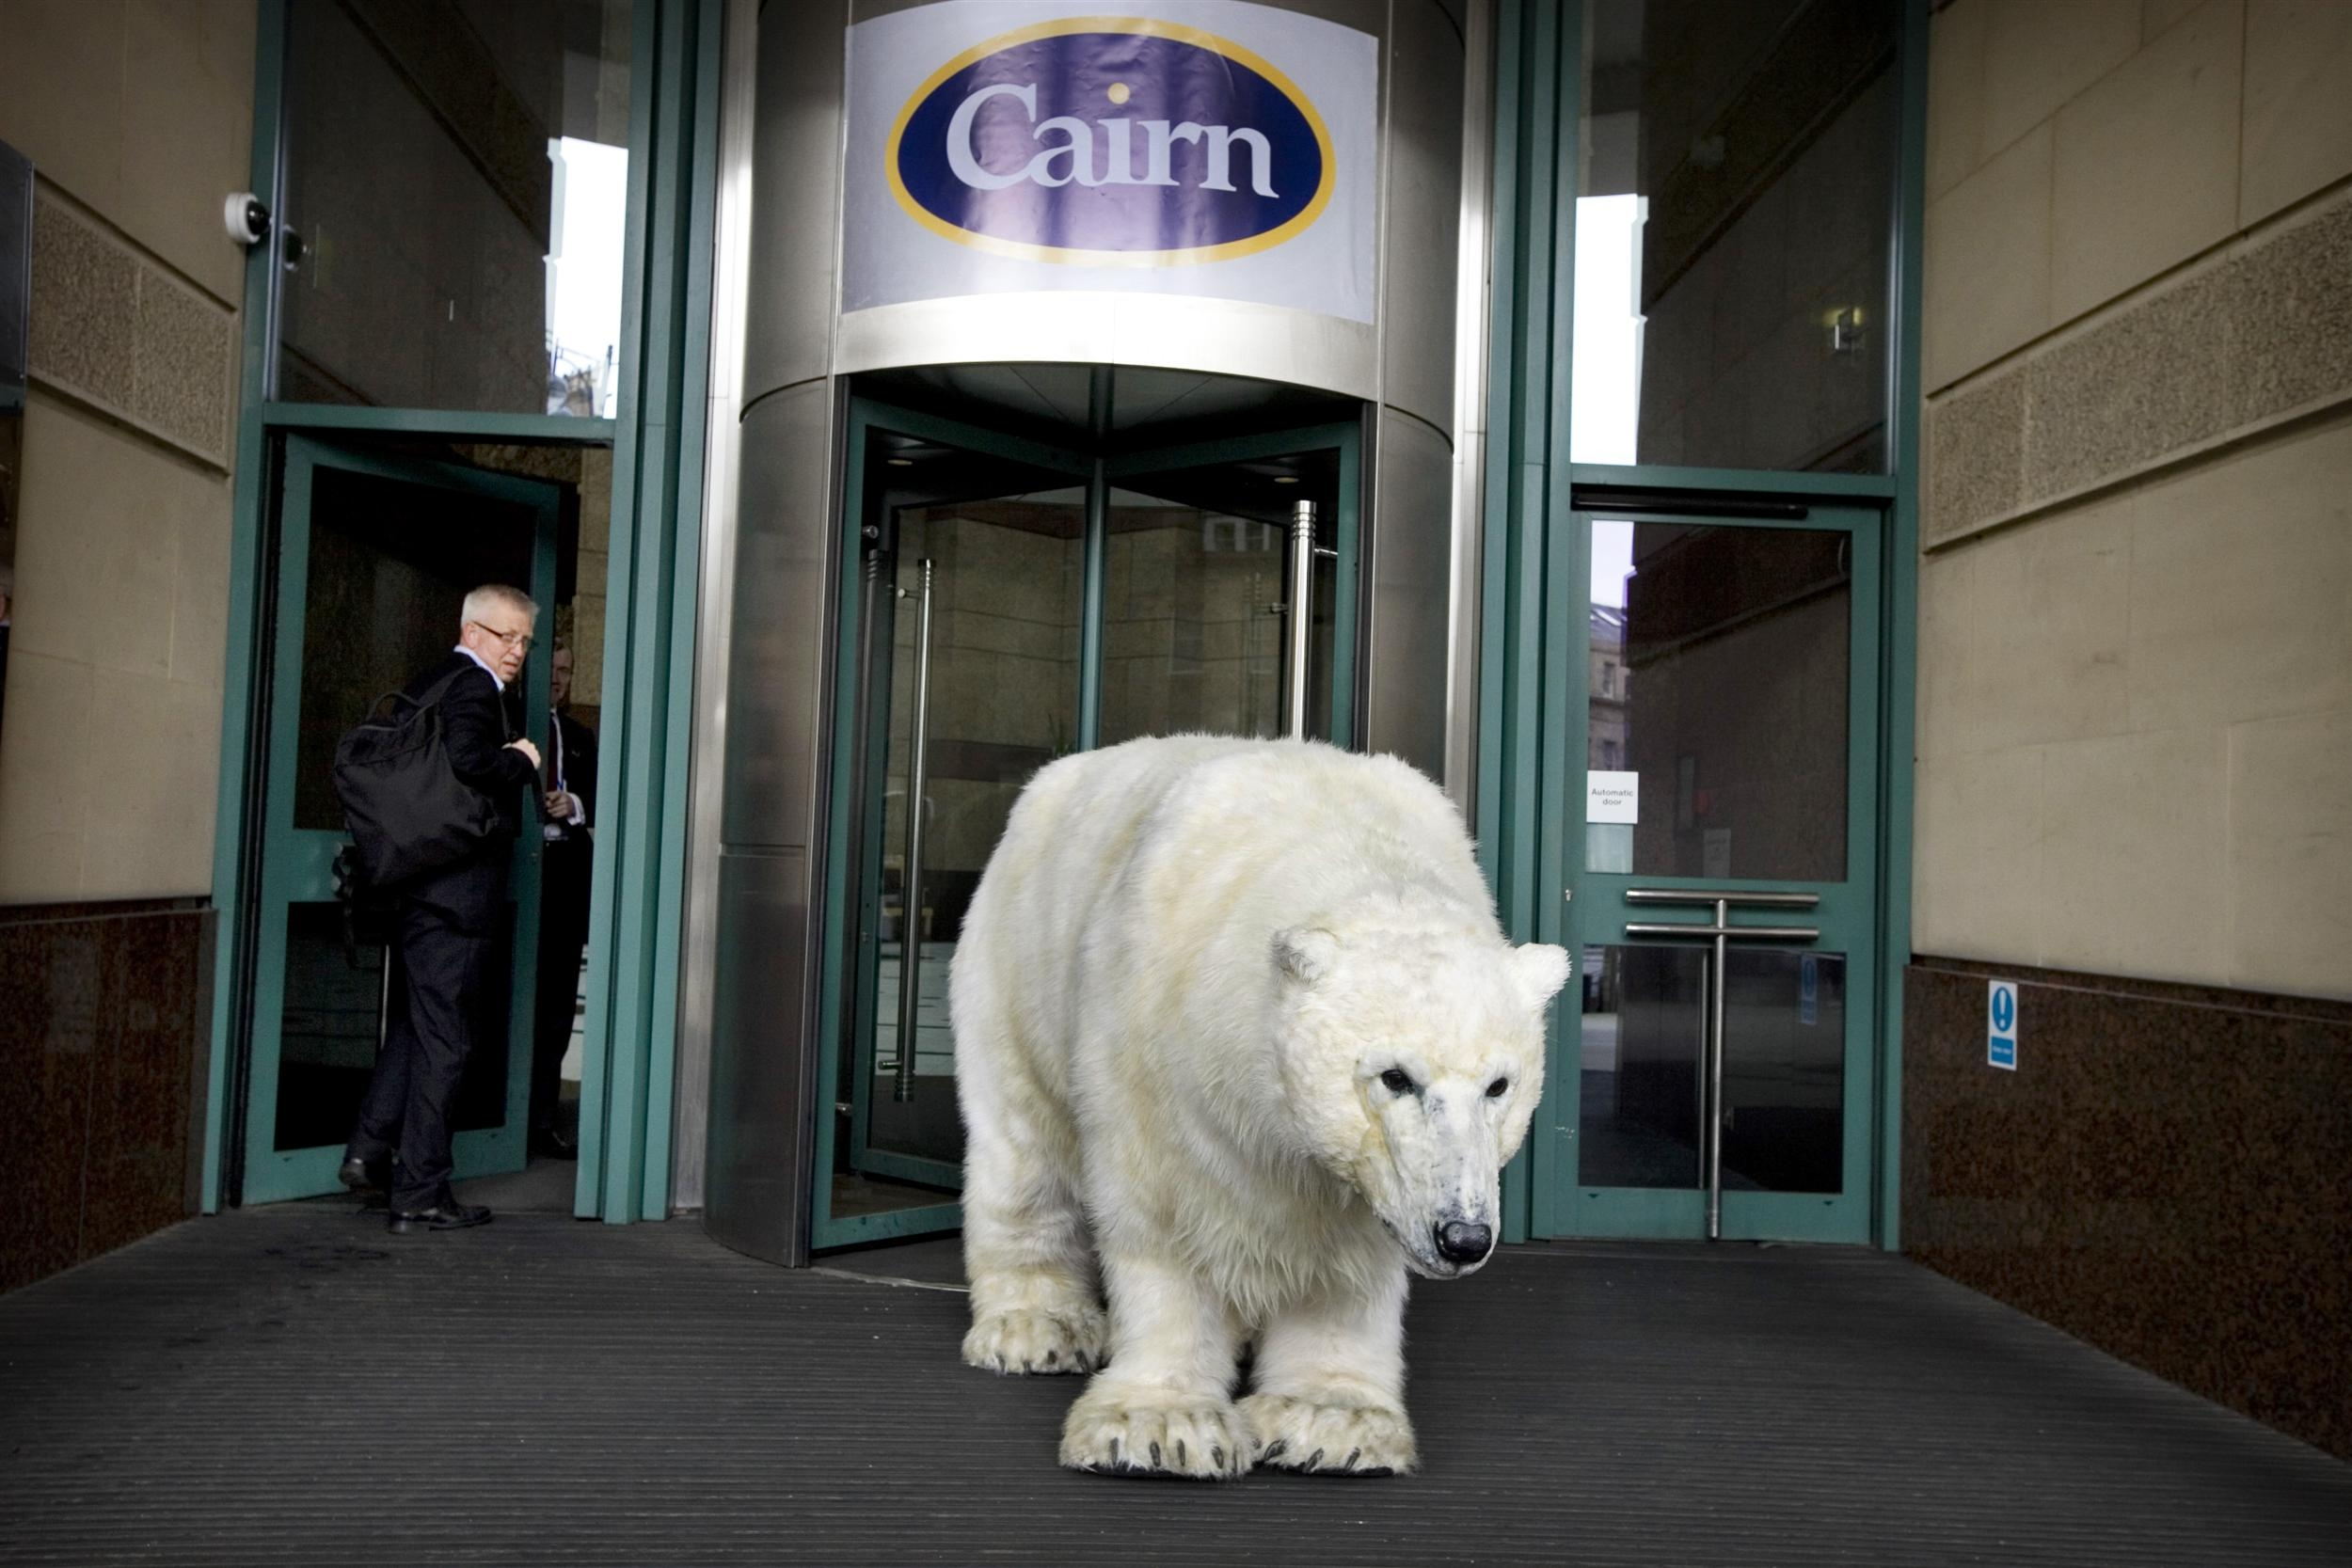 Life-sized polar bear outside Cairn's office